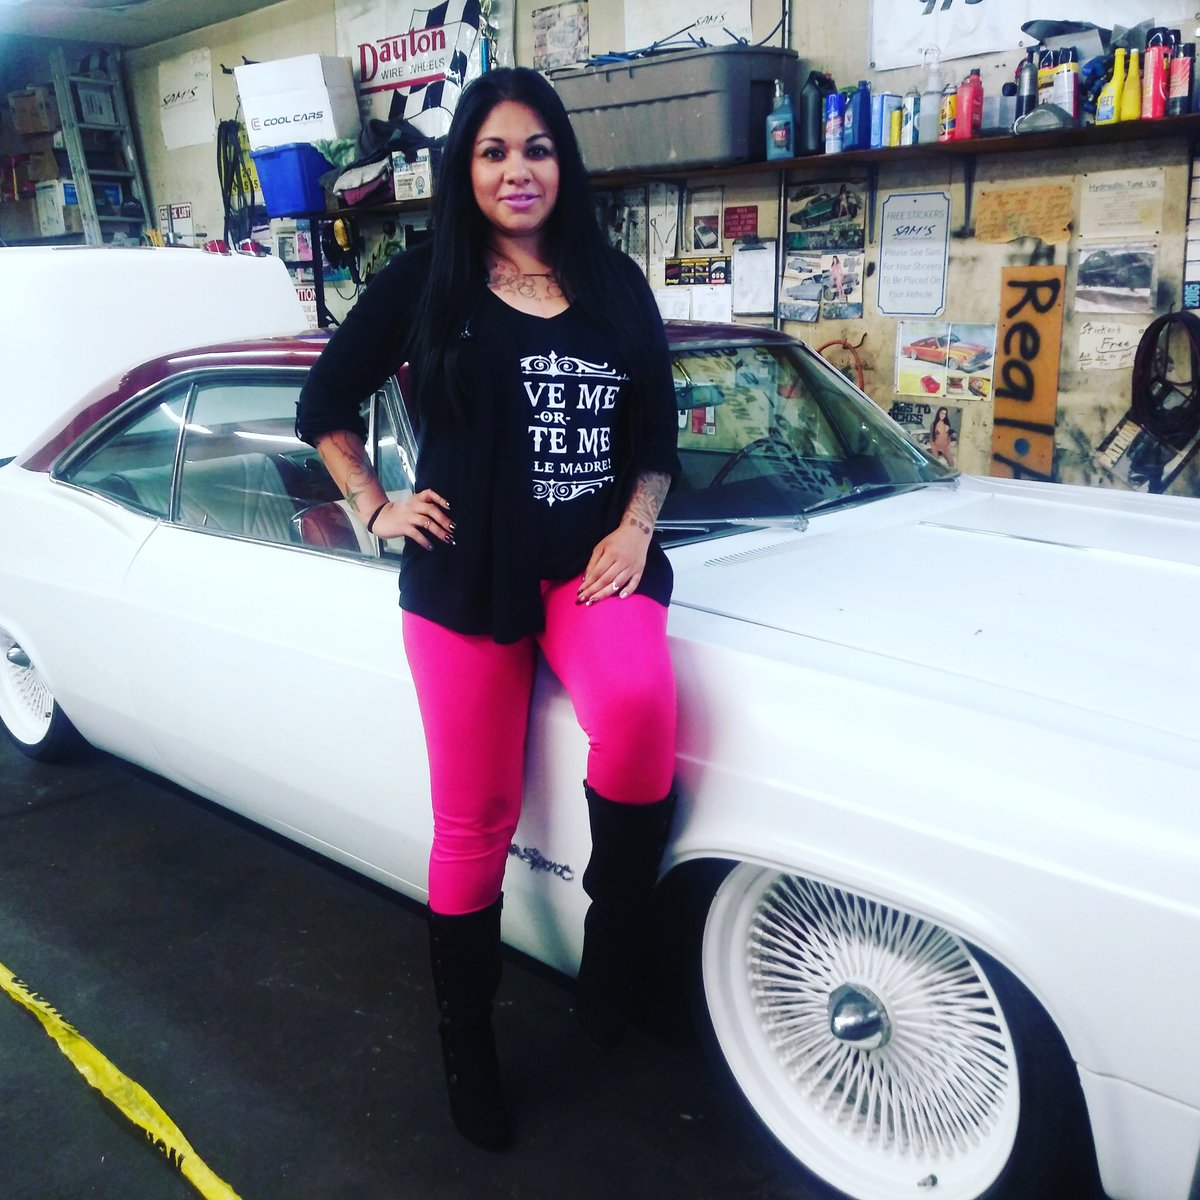 test Twitter Media - 😉😘 looking to get some custom work done on your whip get at Sams Kustom Hydraulics  the best in Colorado 👌 #SexiLexi #SLTEmpire #colorado #lowrider #cars #whips #custompaint #hydraulics https://t.co/mBXyUp5tfl